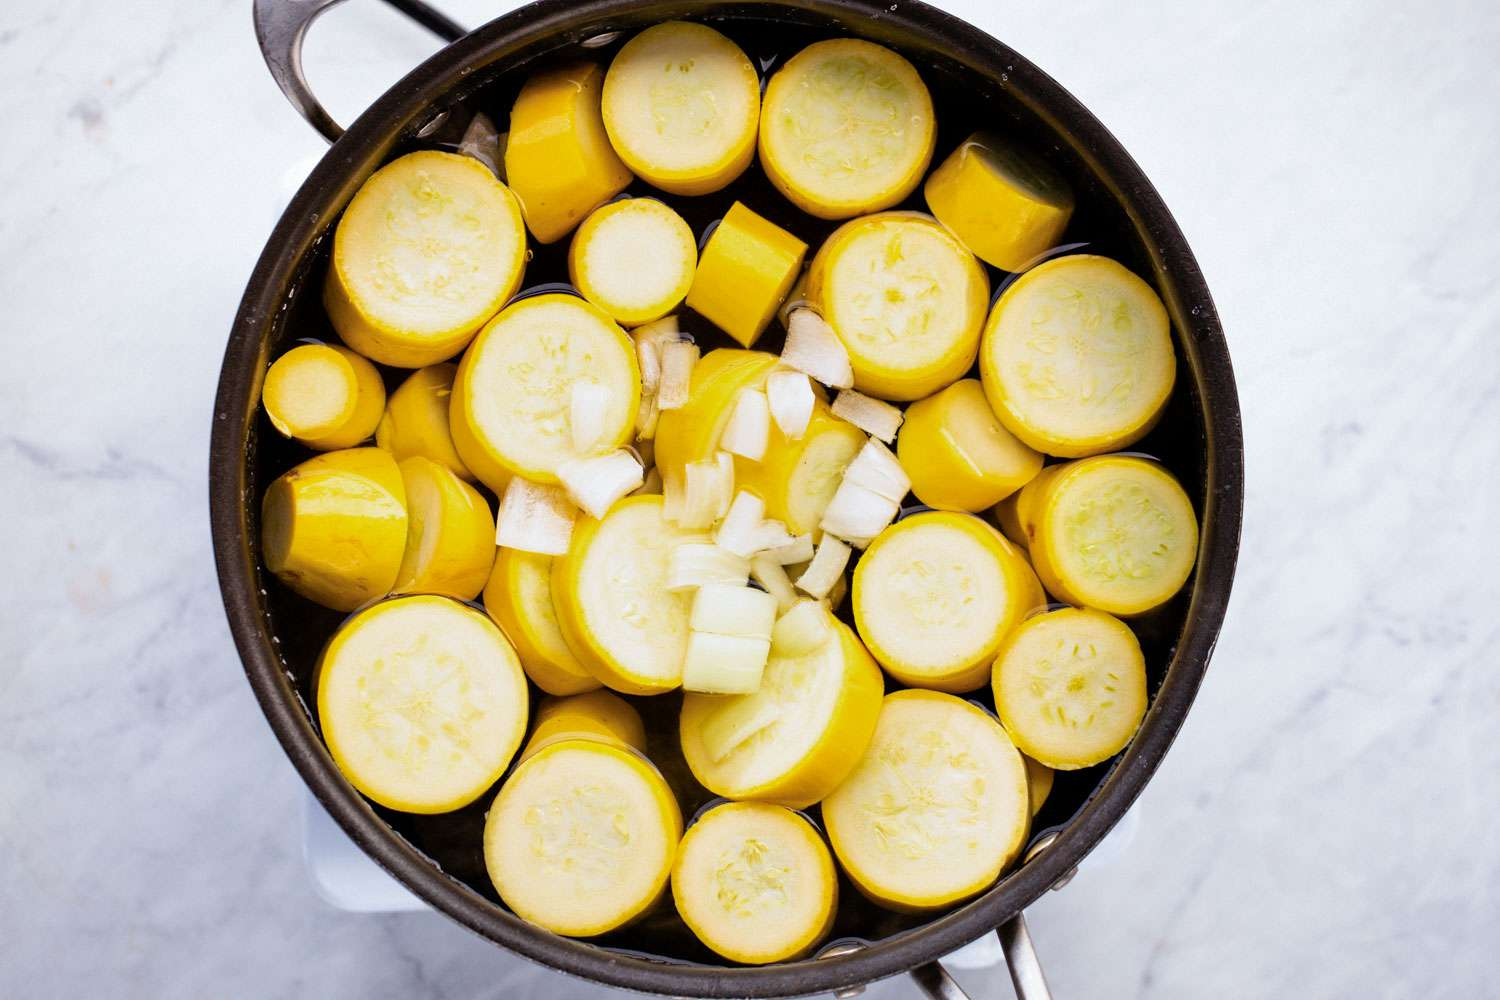 Cook the sliced squash and chopped onion in boiling salt water